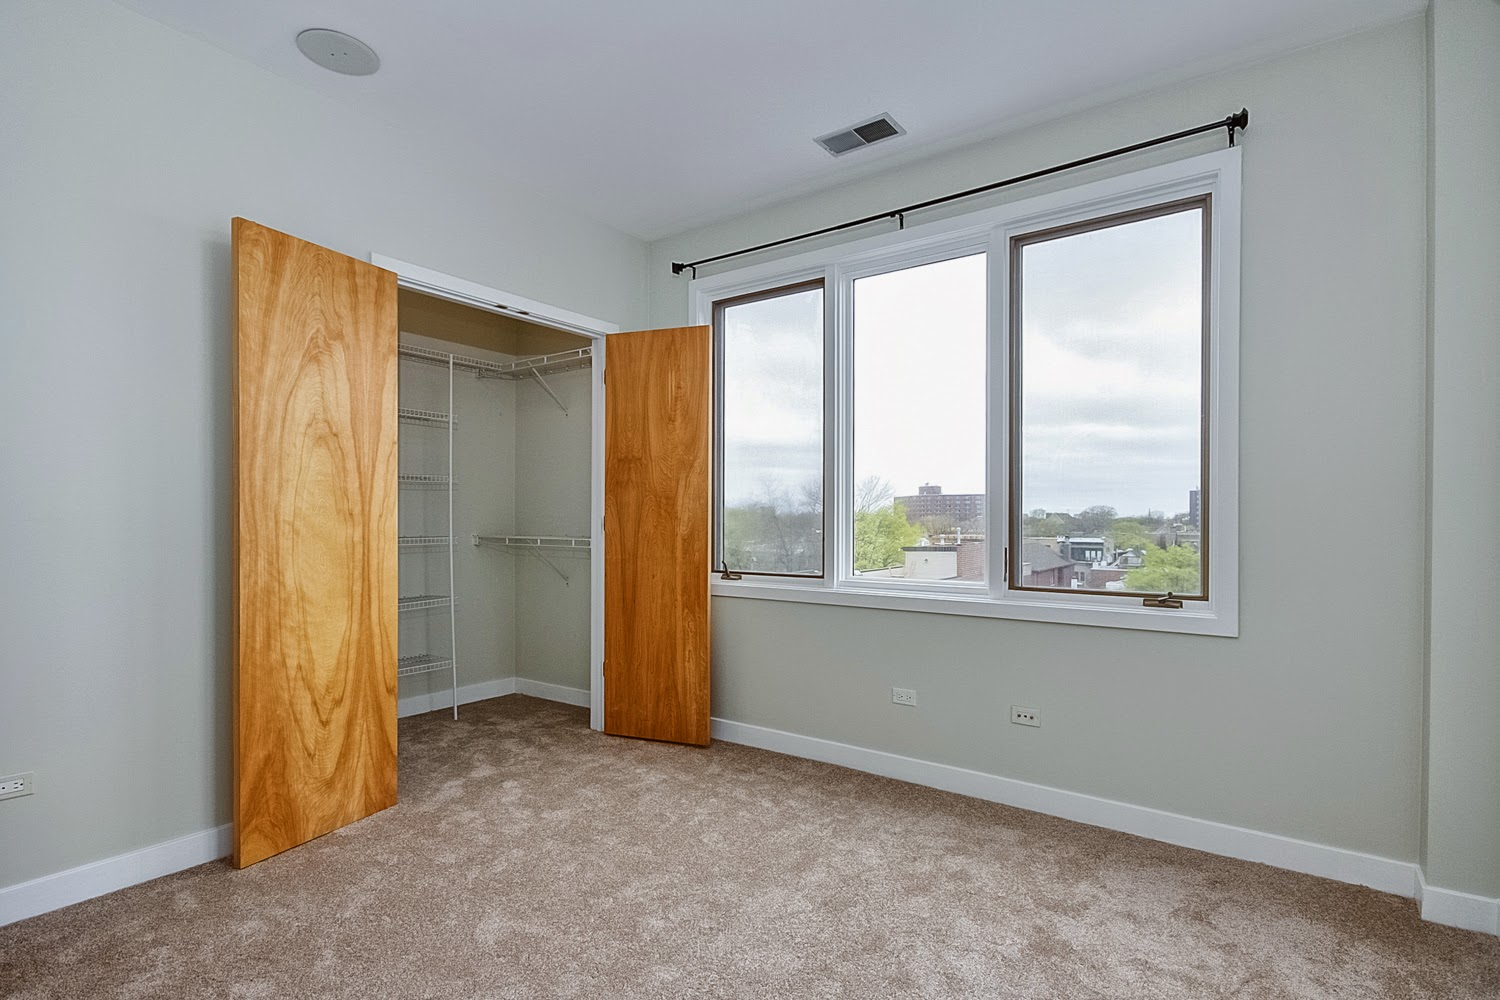 The Chicago Real Estate Local: New for sale! Tour a ...